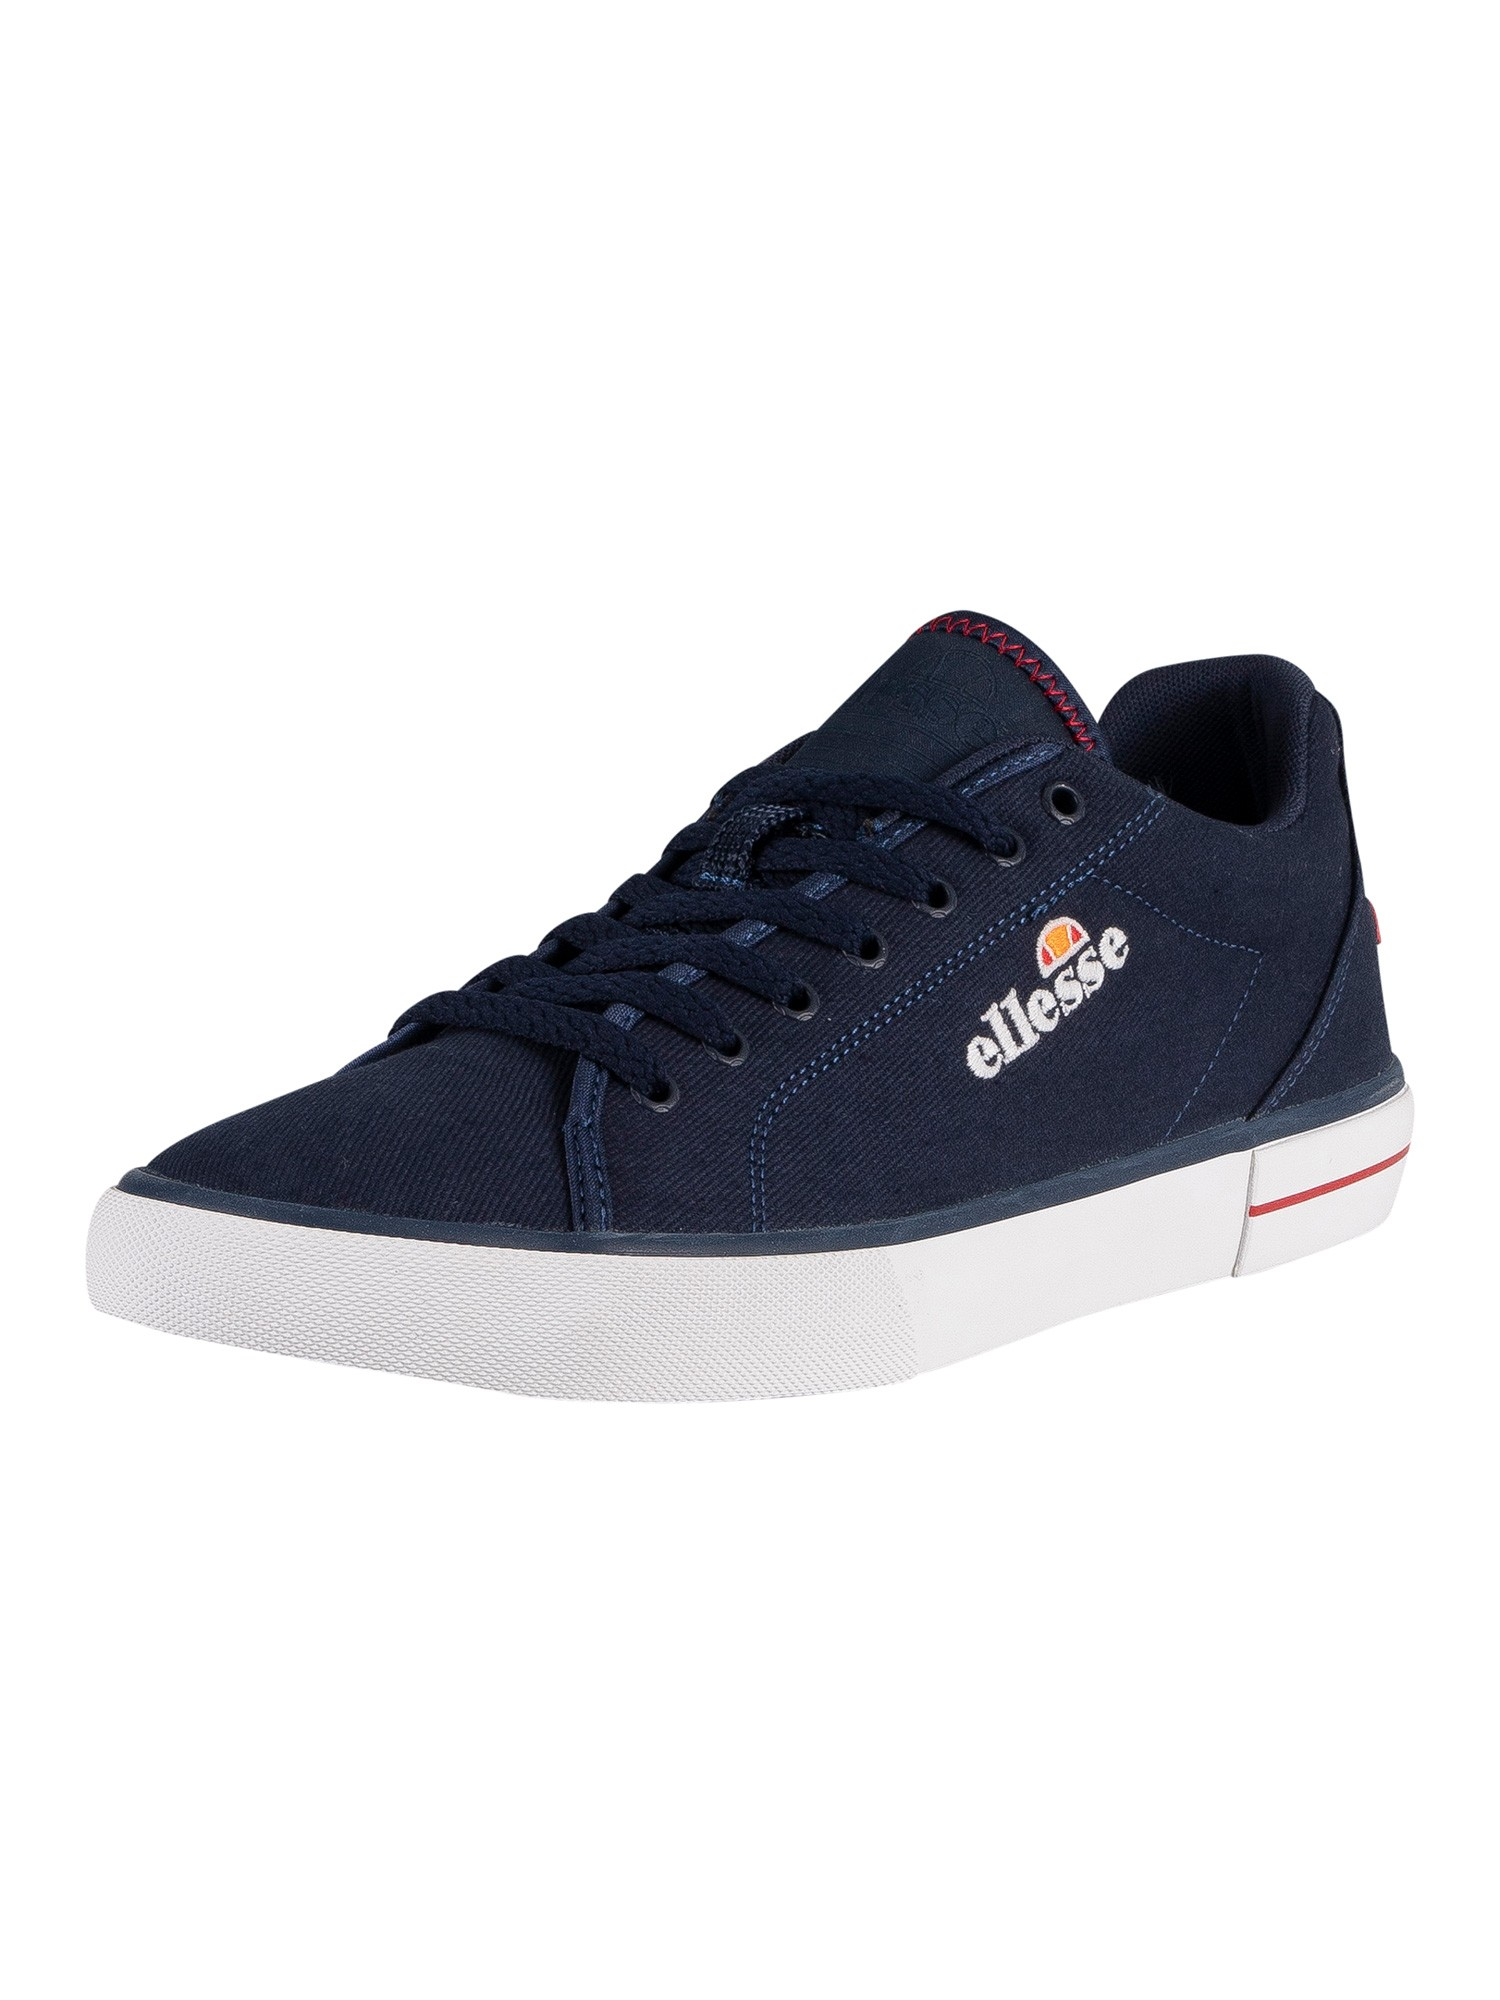 Ellesse Taggia Text Canvas Trainers - Dark Blue/Red/White